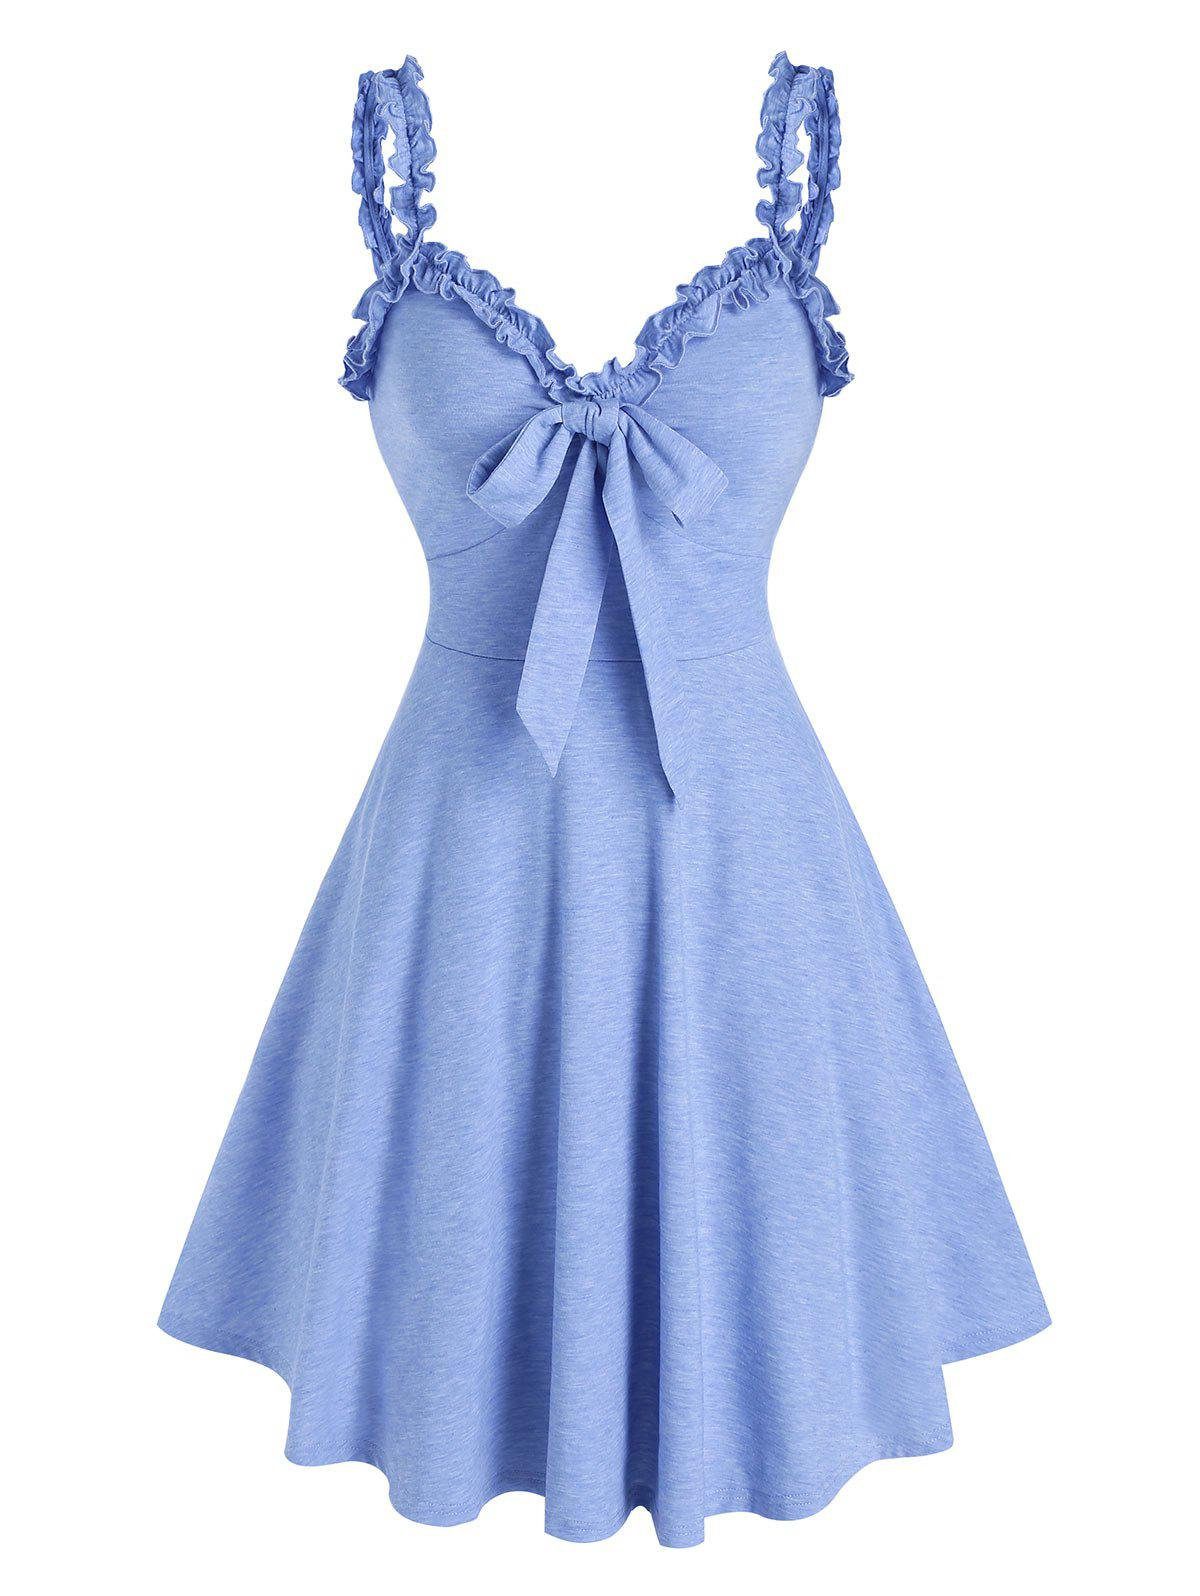 Chic Bowknot Ruffles Fit And Flare Dress